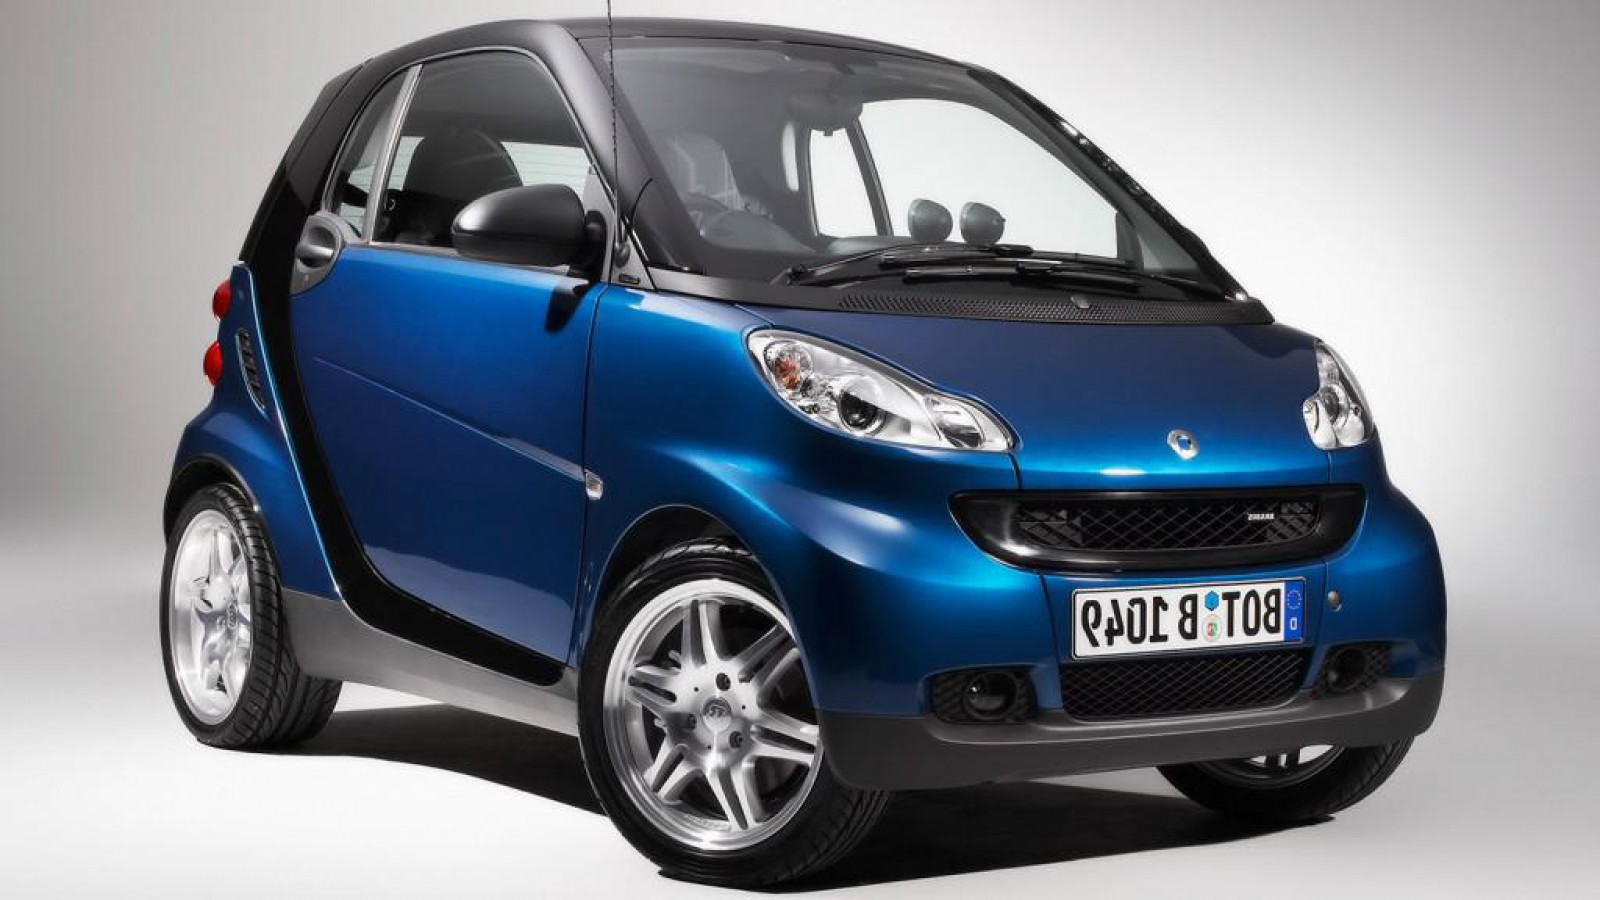 smart fortwo 2008 #8